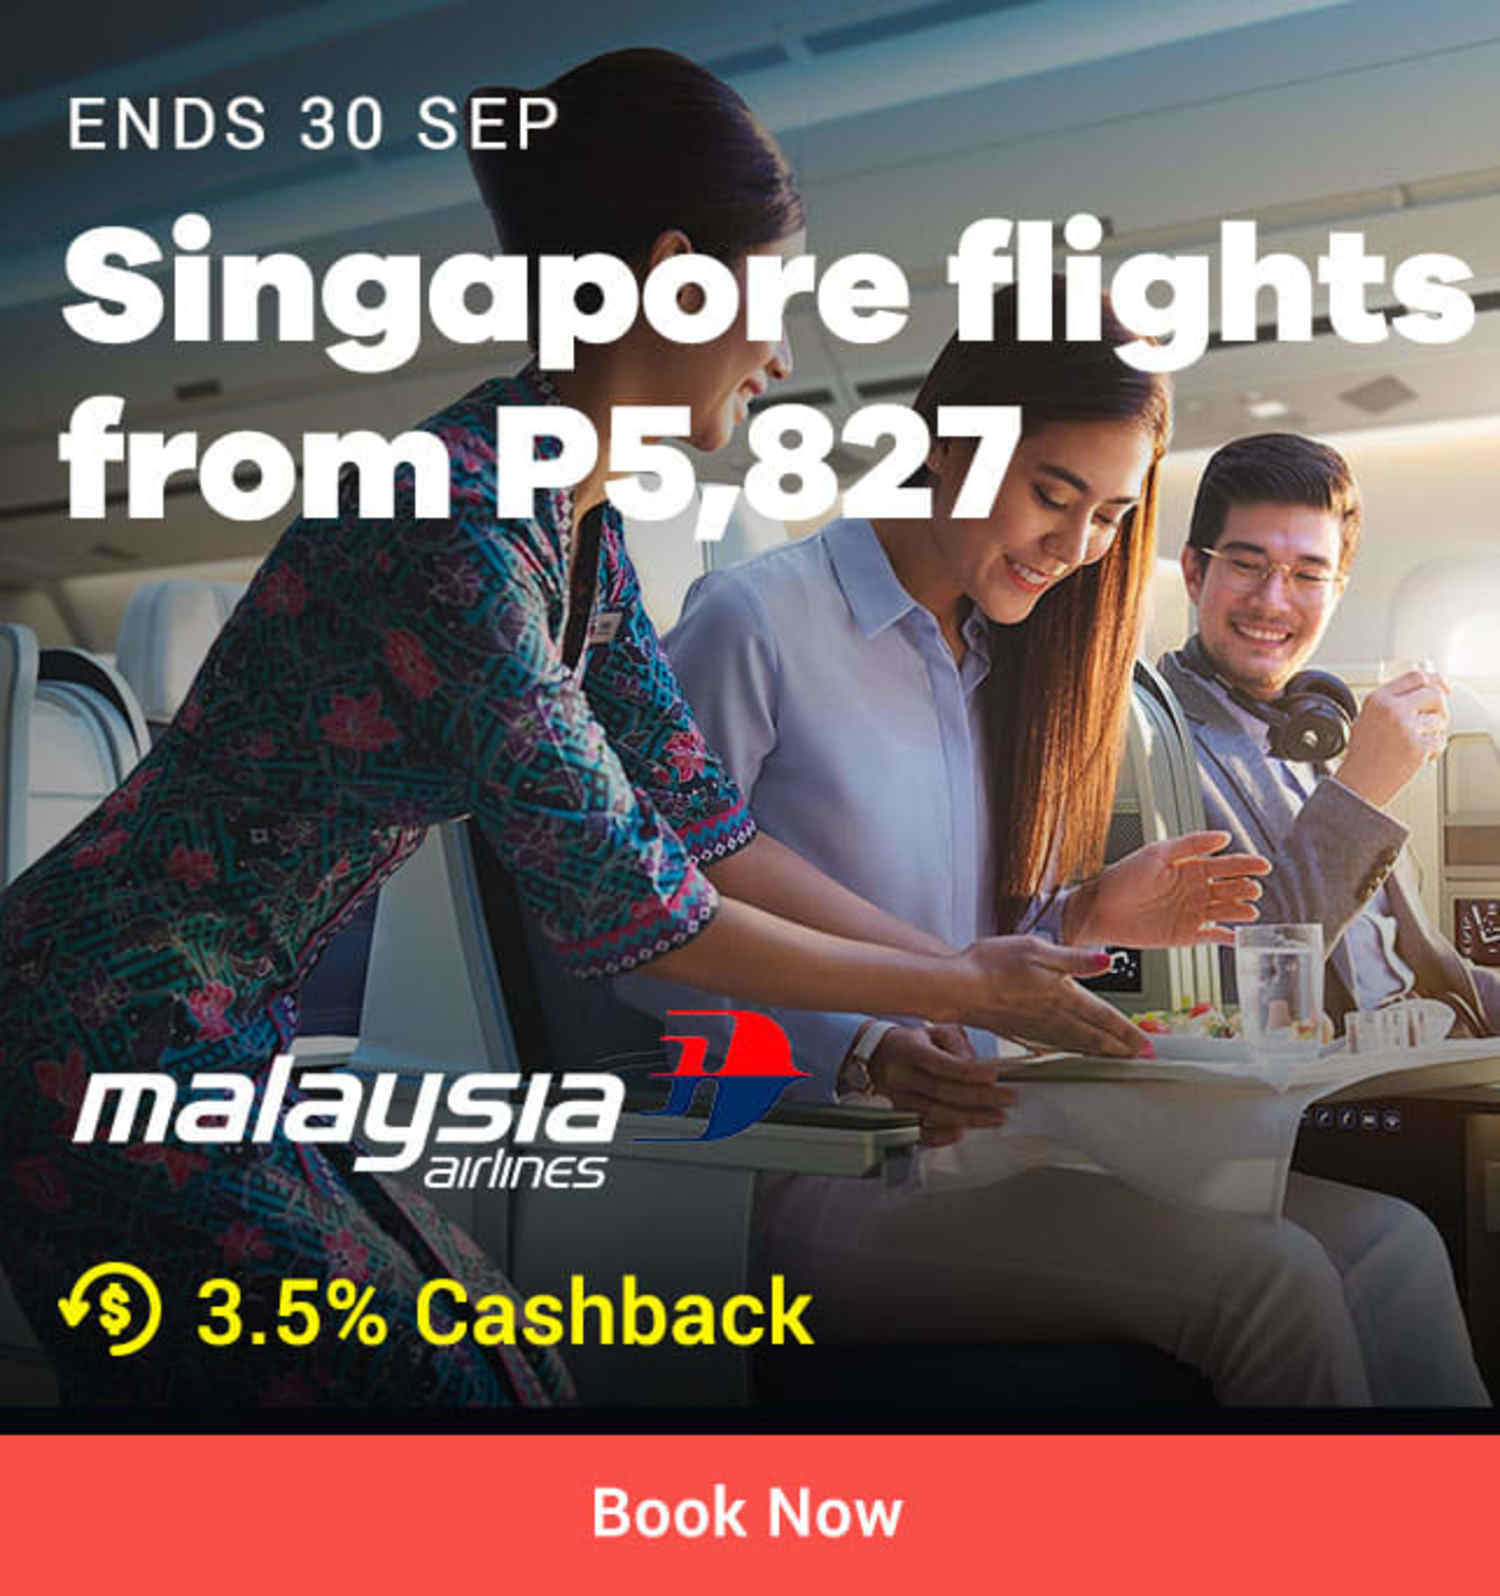 Malaysia Airlines: Singapore flights from P5,827